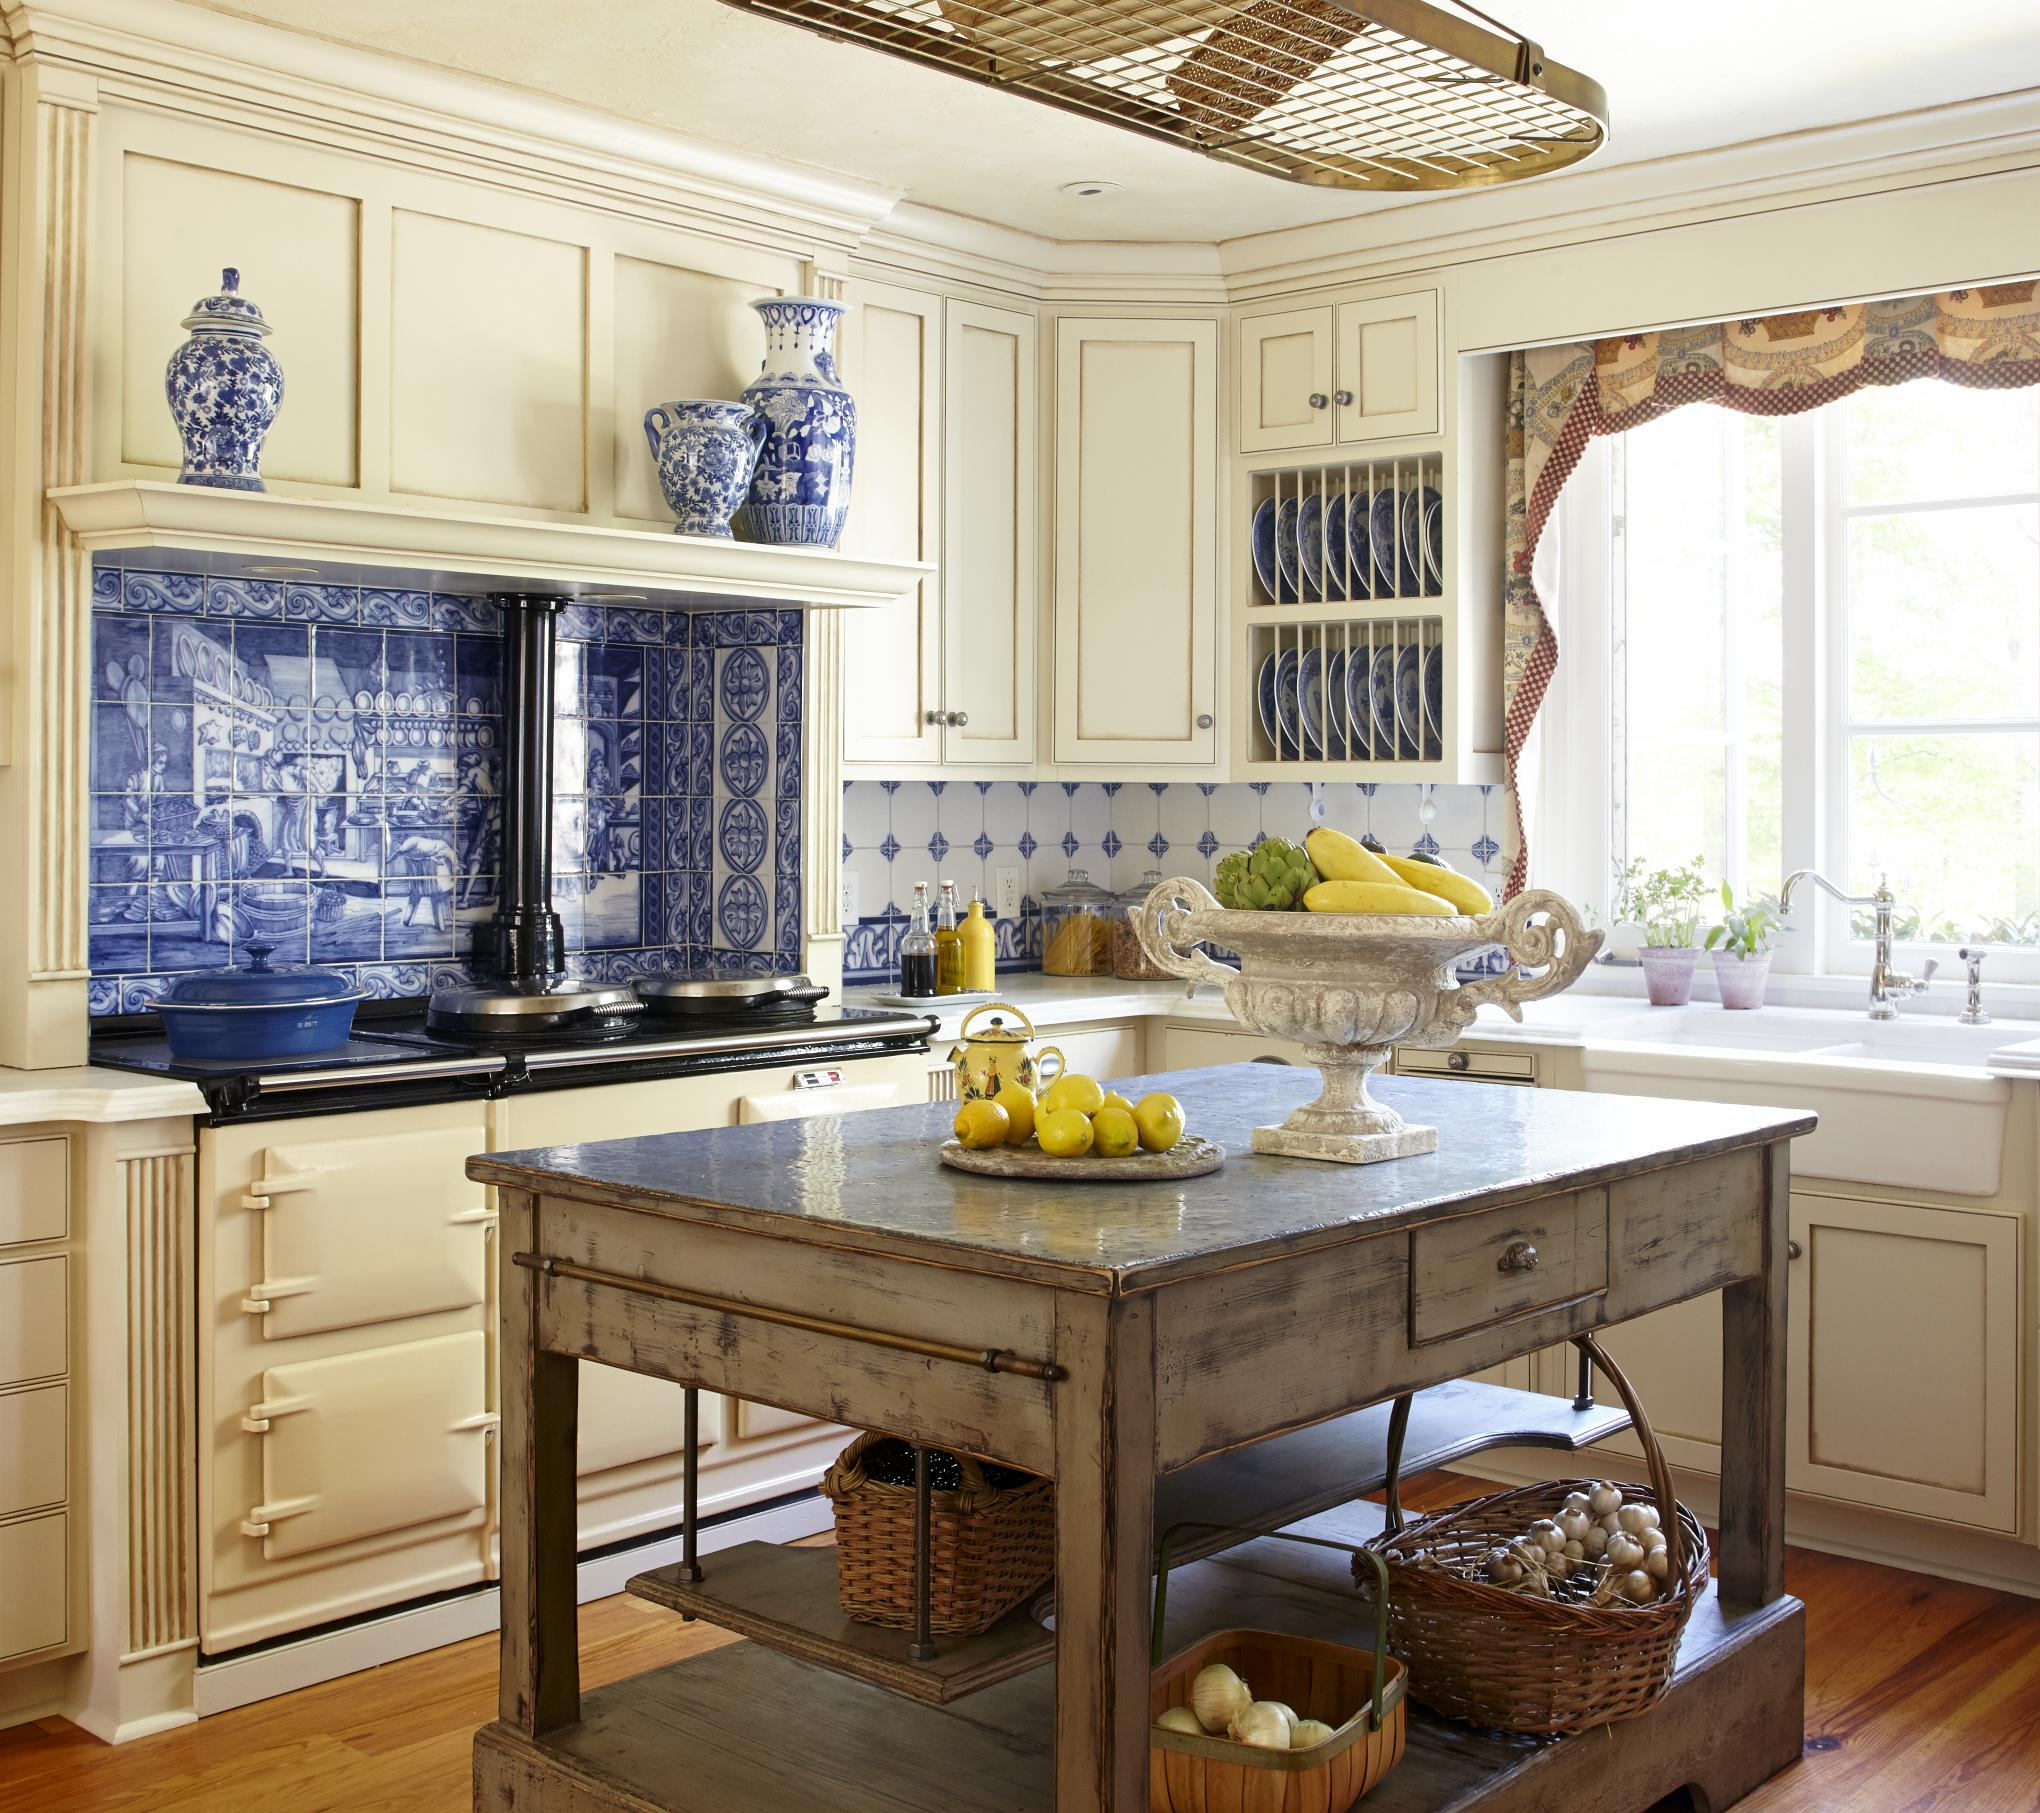 French Provincial Kitchen Ideas: Country French Kitchens